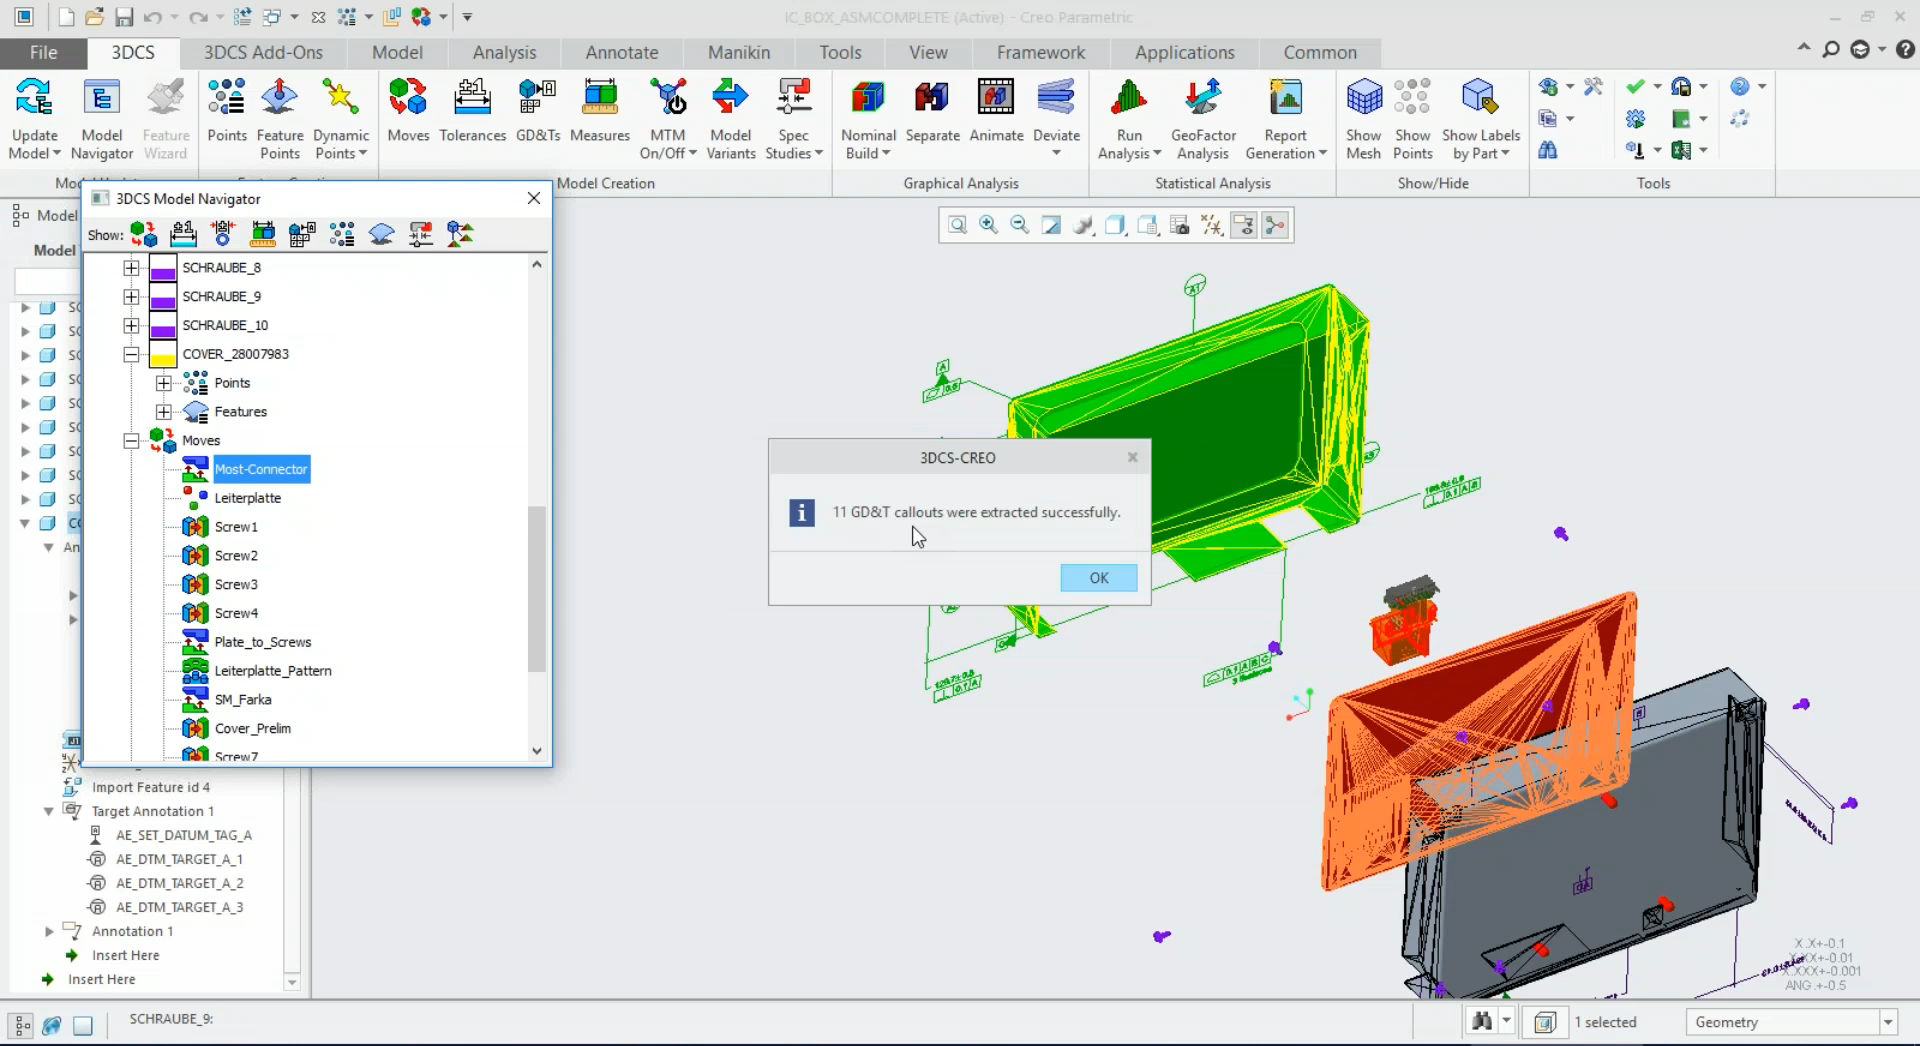 SOLIDWORKS PMI - Save Time by Using SOLIDWORKS PMI and GD&T for DVA Dimensional Variation Analysis